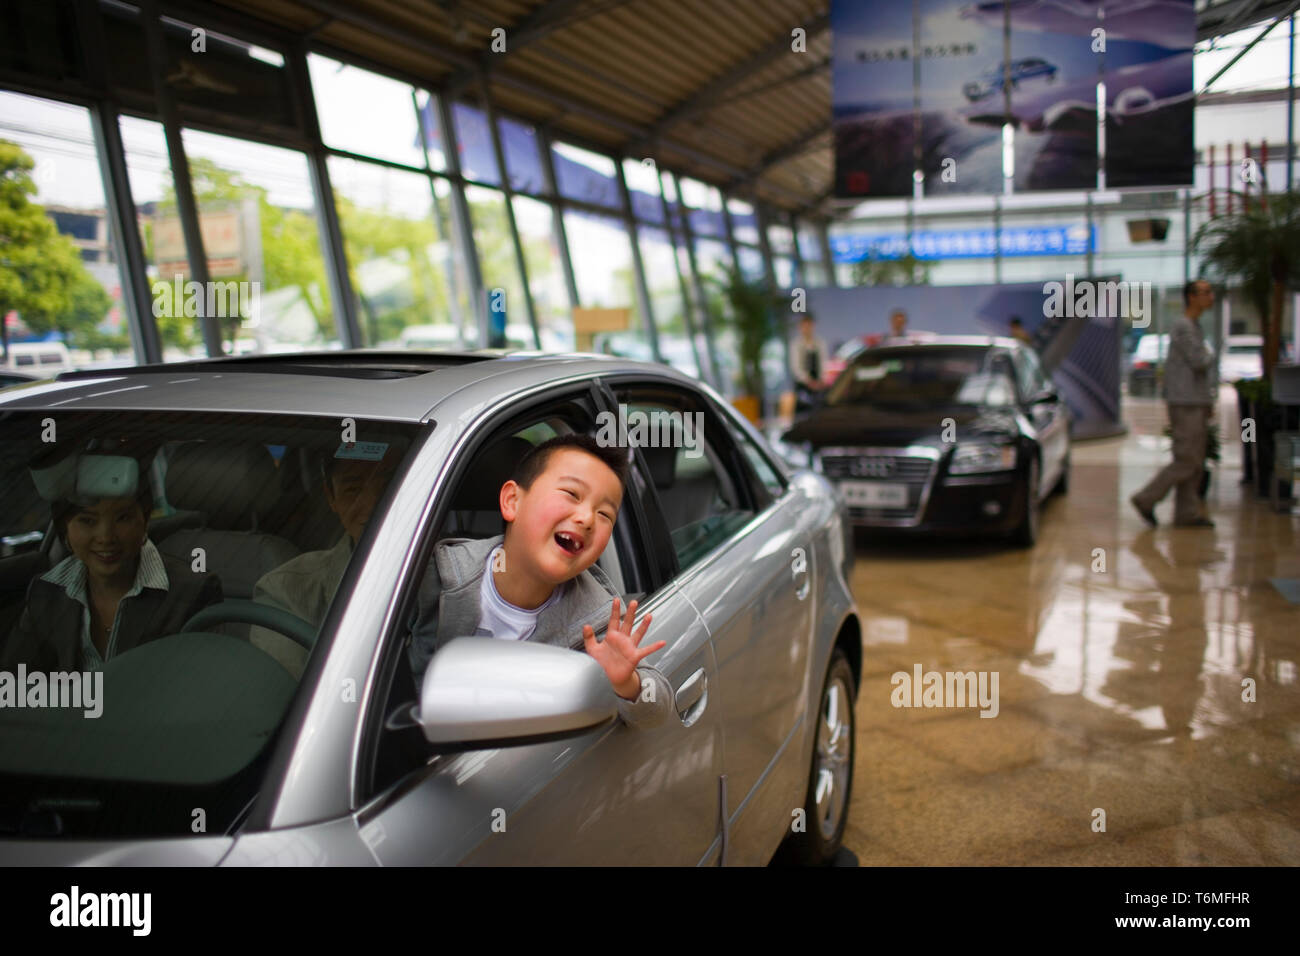 Portrait of a young boy waving out the window of a car he is sitting in with his parents inside a showroom. - Stock Image